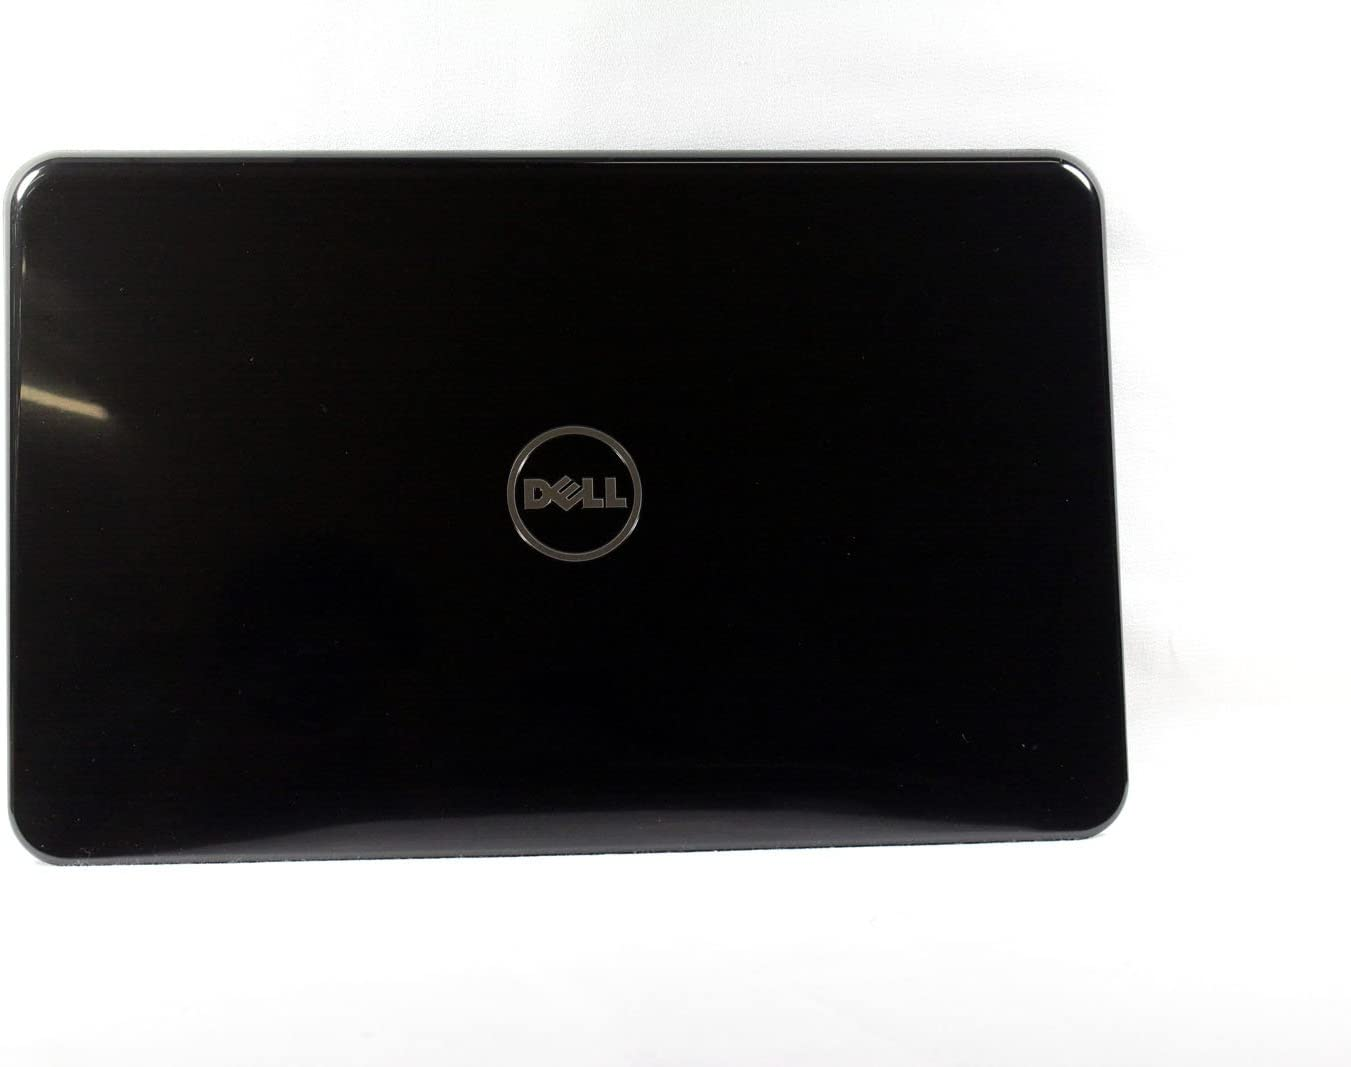 YRJ61 - Black - Dell Switch Lid - Inspiron 15R (N5110) Switchable Top Cover - YRJ61